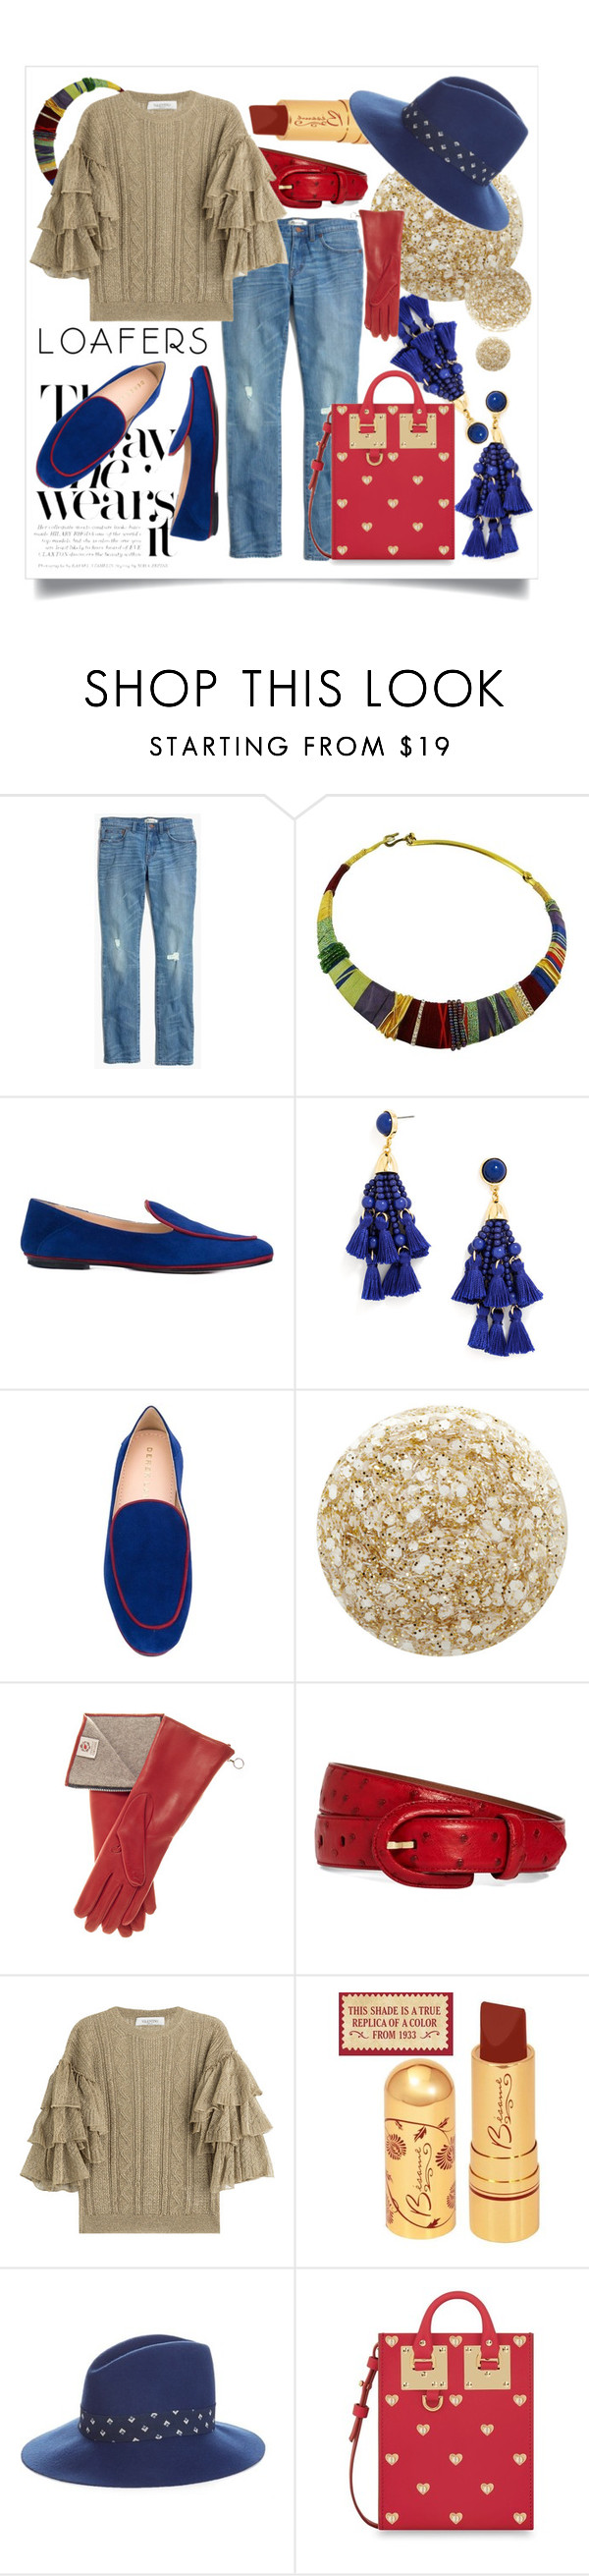 """""""Blue Loafers"""" by capricat ❤ liked on Polyvore featuring Madewell, Christian Lacroix, Derek Lam, BaubleBar, Nails Inc., Brooks Brothers, Valentino, Weekend Max Mara and Sophie Hulme"""